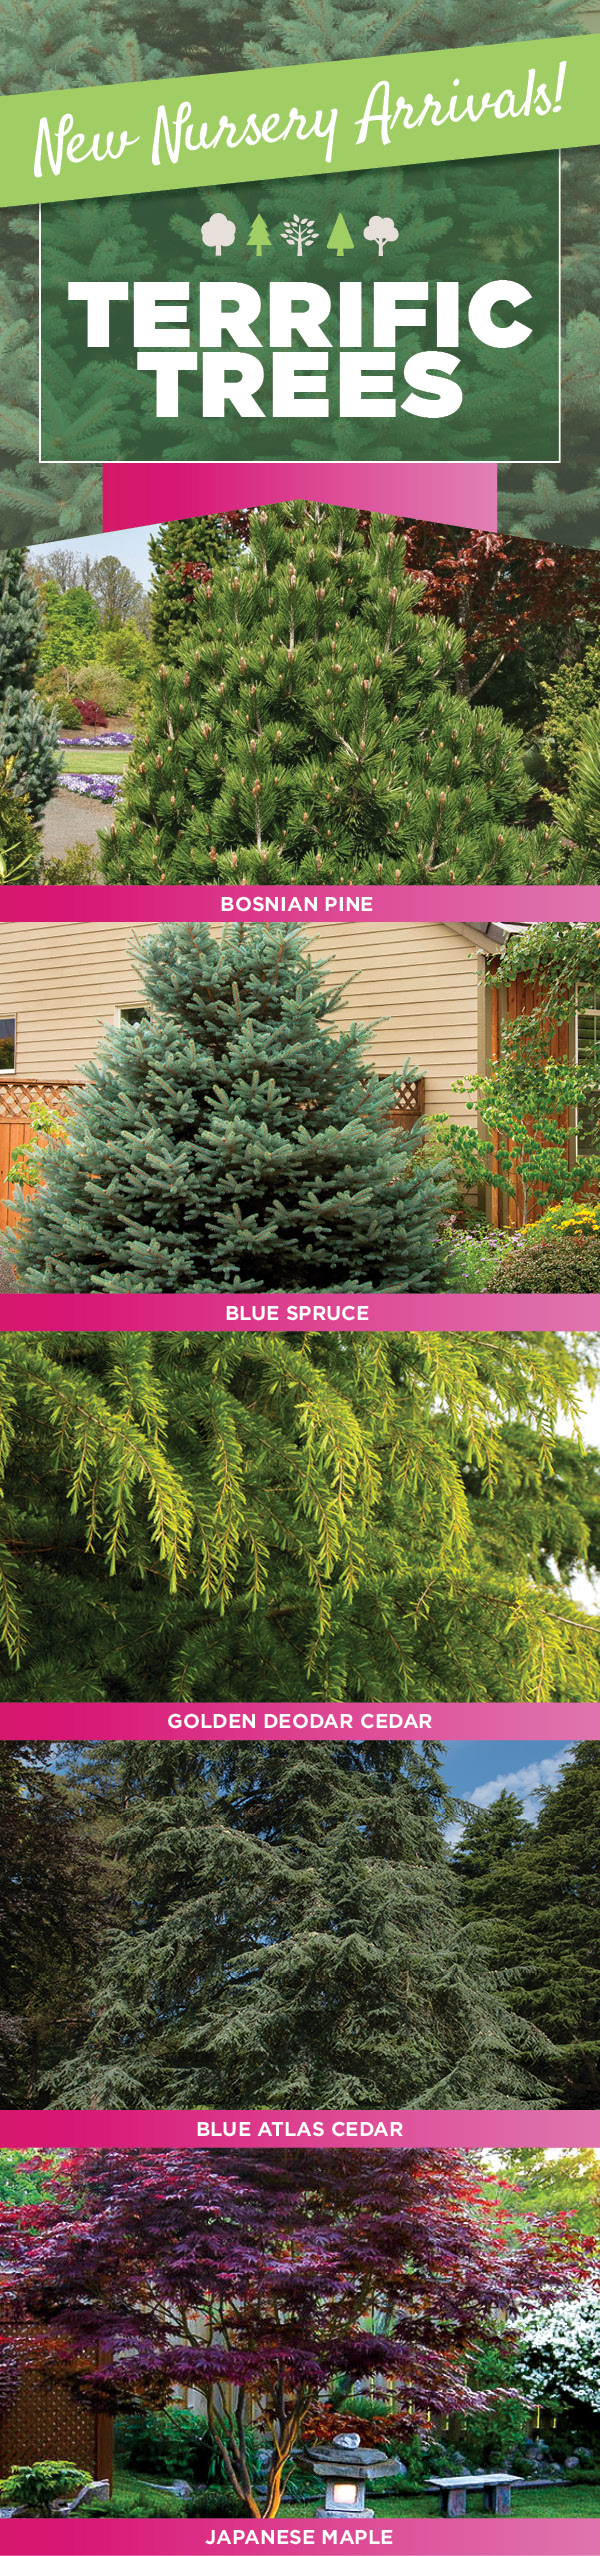 Terrific Trees | TLC Garden Centers